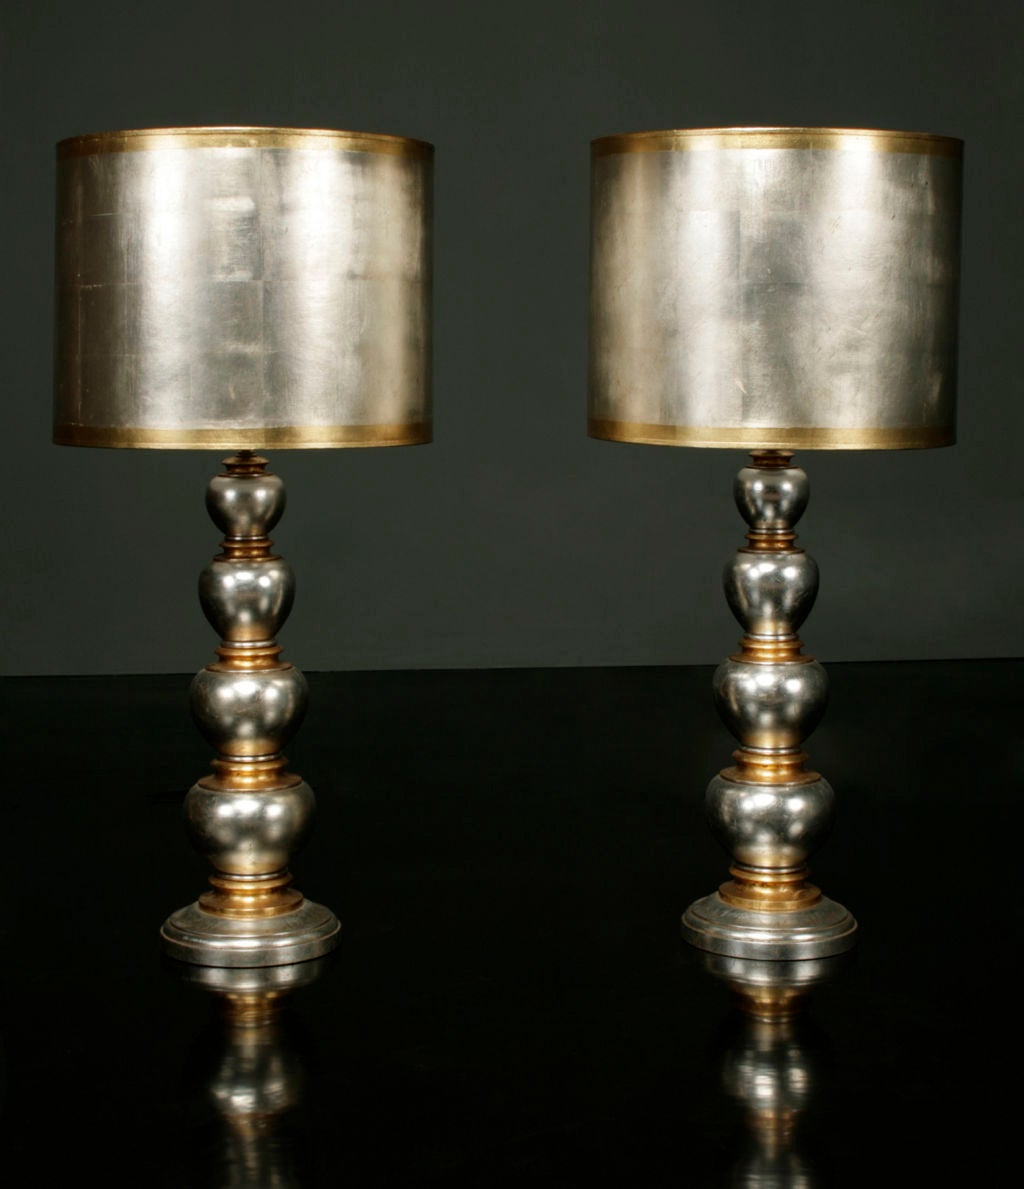 Pair Of Gold And Silver Ball Lamps By James Mont At 1stdibs